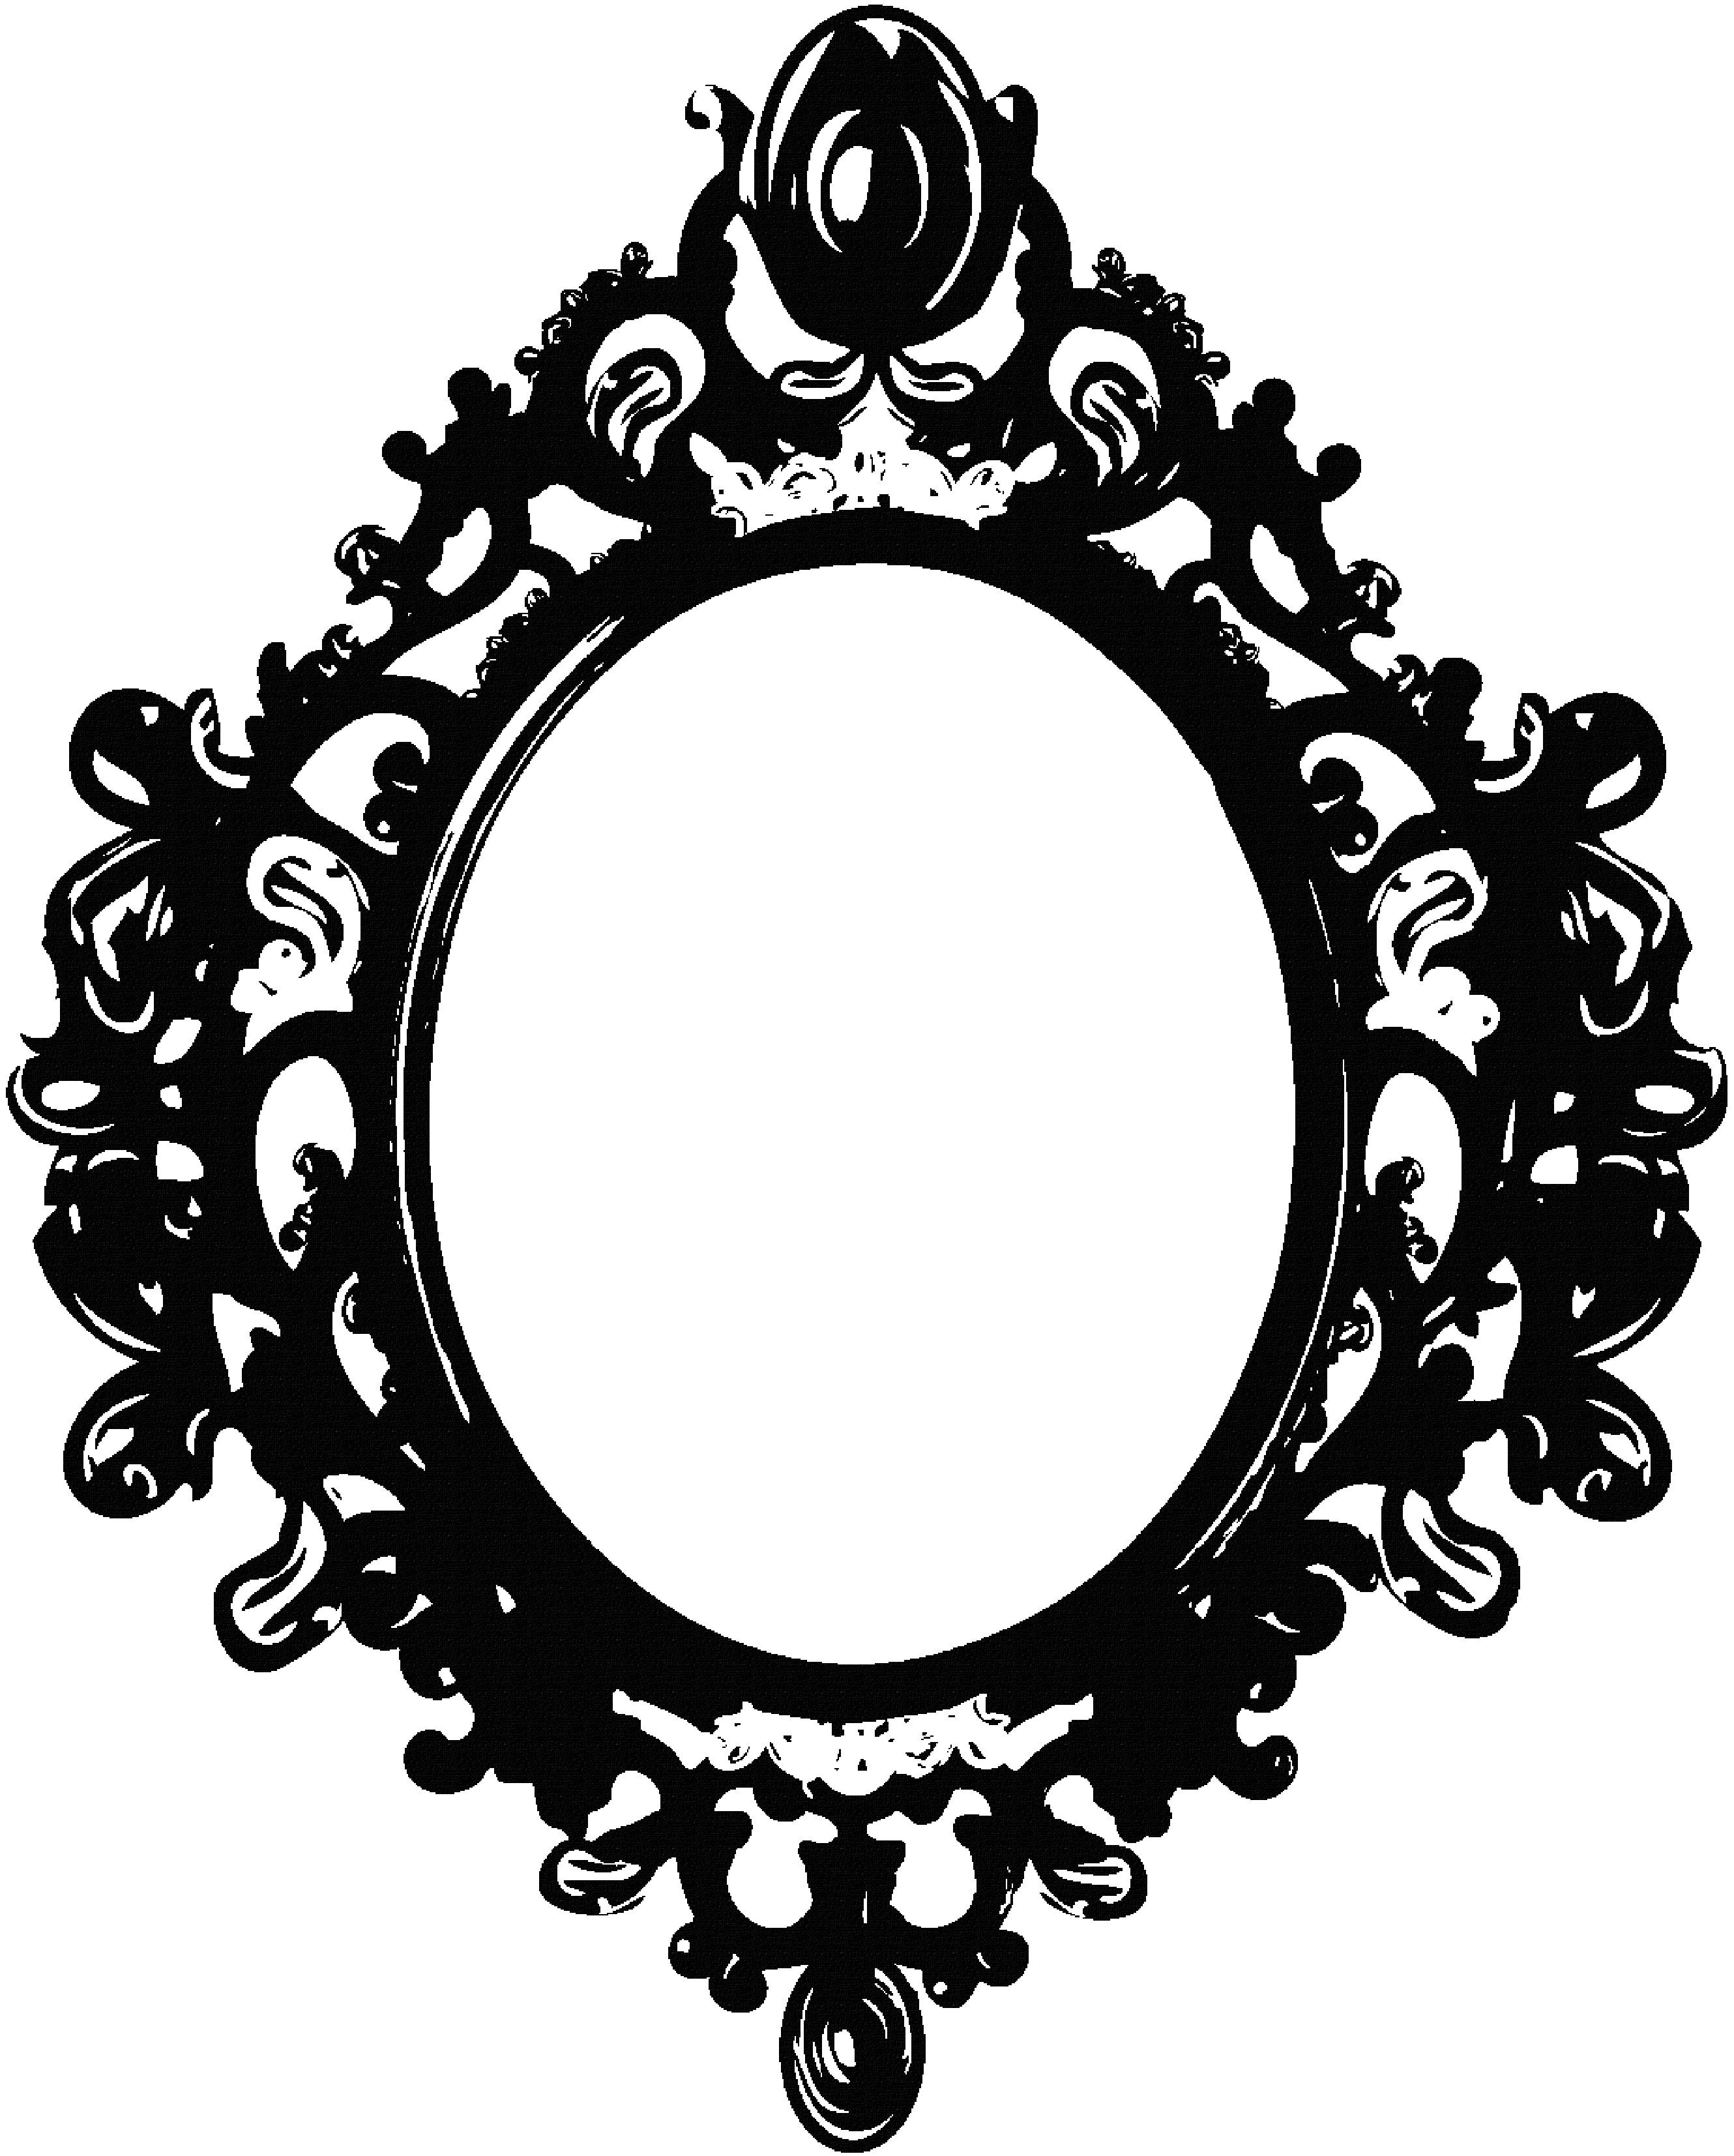 Antique Oval Frame | Free download on ClipArtMag